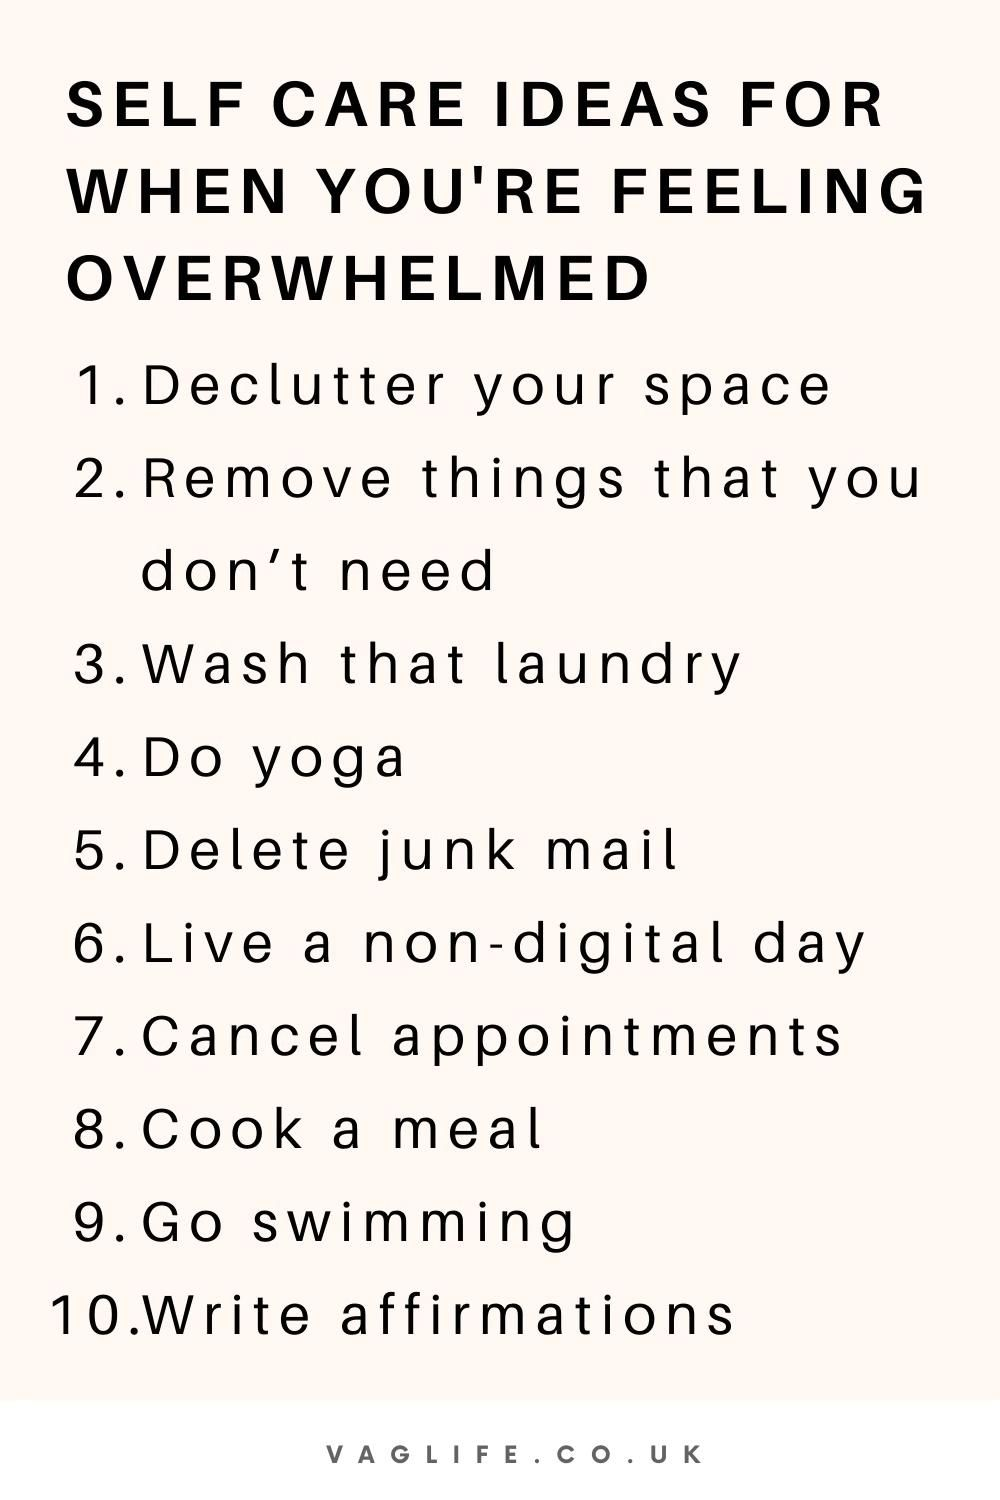 Self Care Ideas For When You're Feeling Overwhelmed